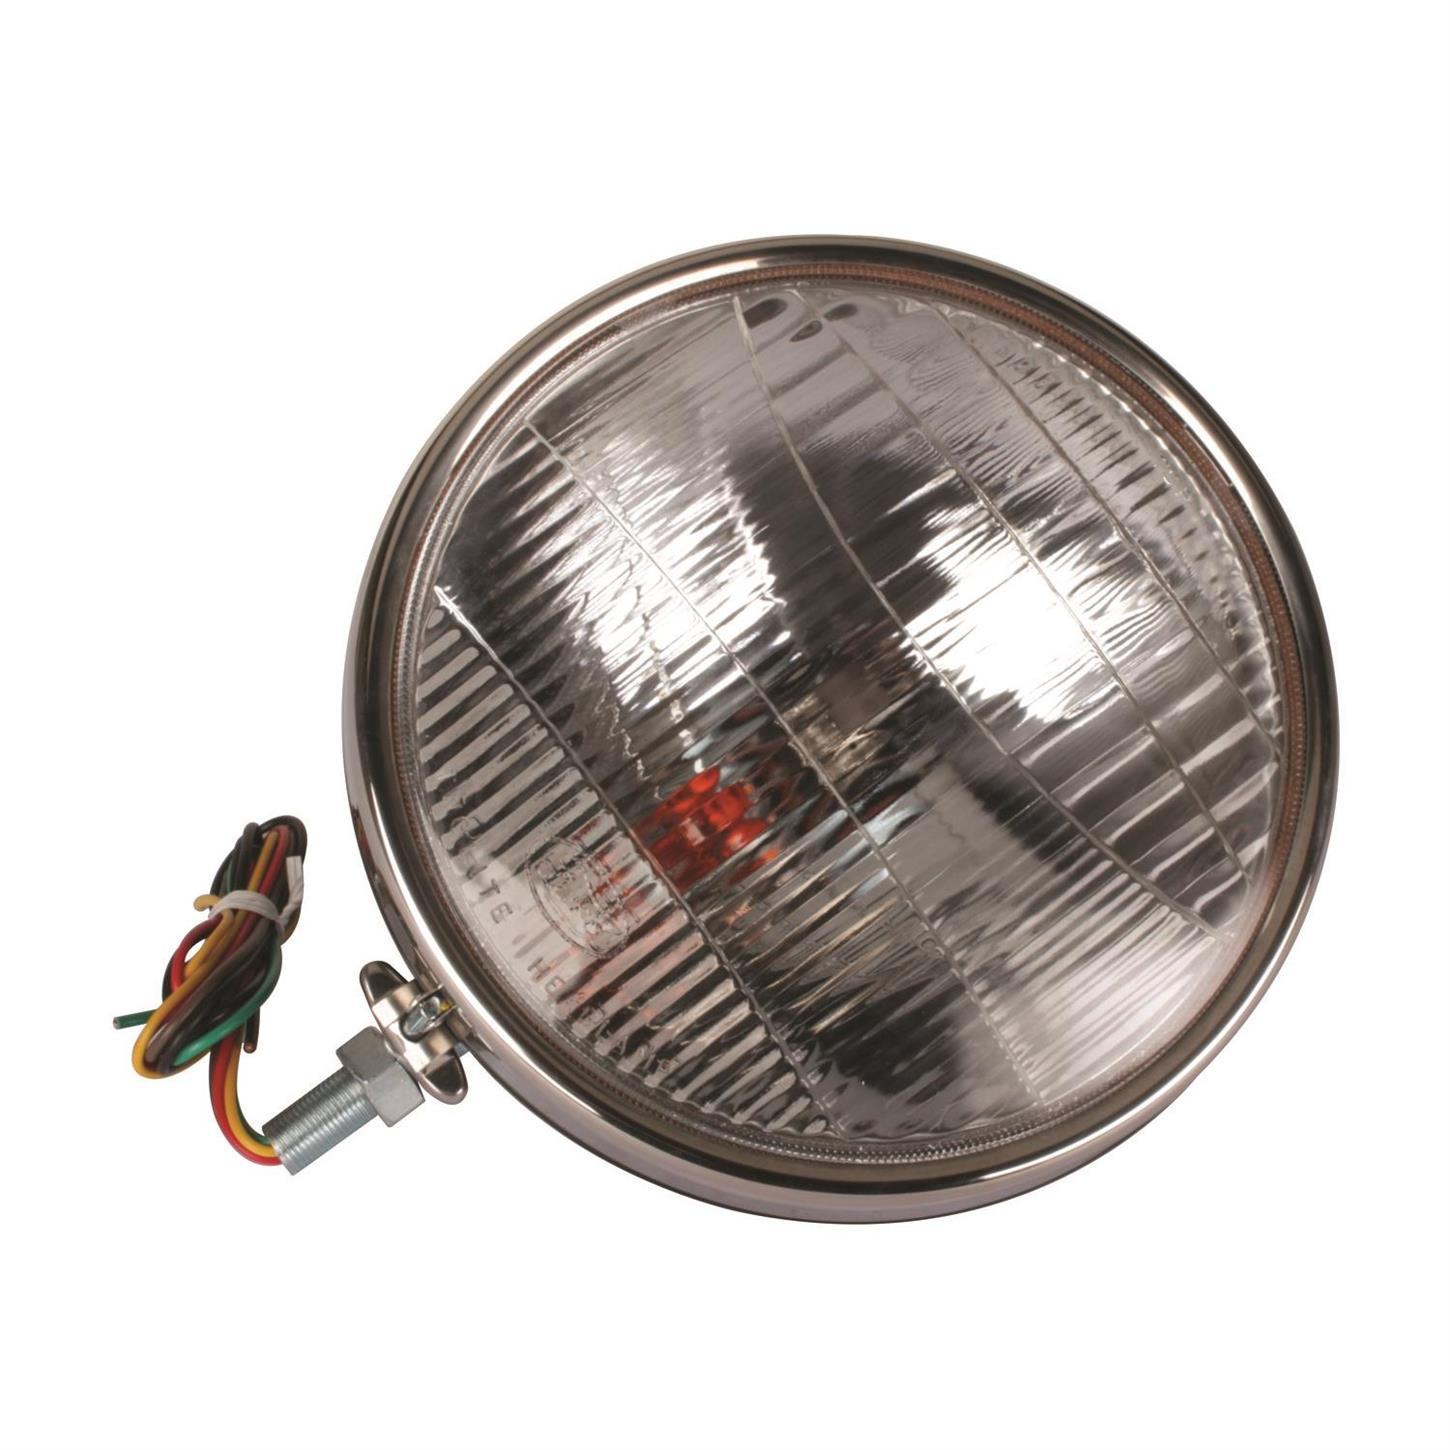 Classic Truck Exterior Lighting Free Shipping Speedway Motors 1950 Mercury Headlight Switch Wiring 1934 Ford Commercial Headlilghts 12v Halogen W Turn Signal